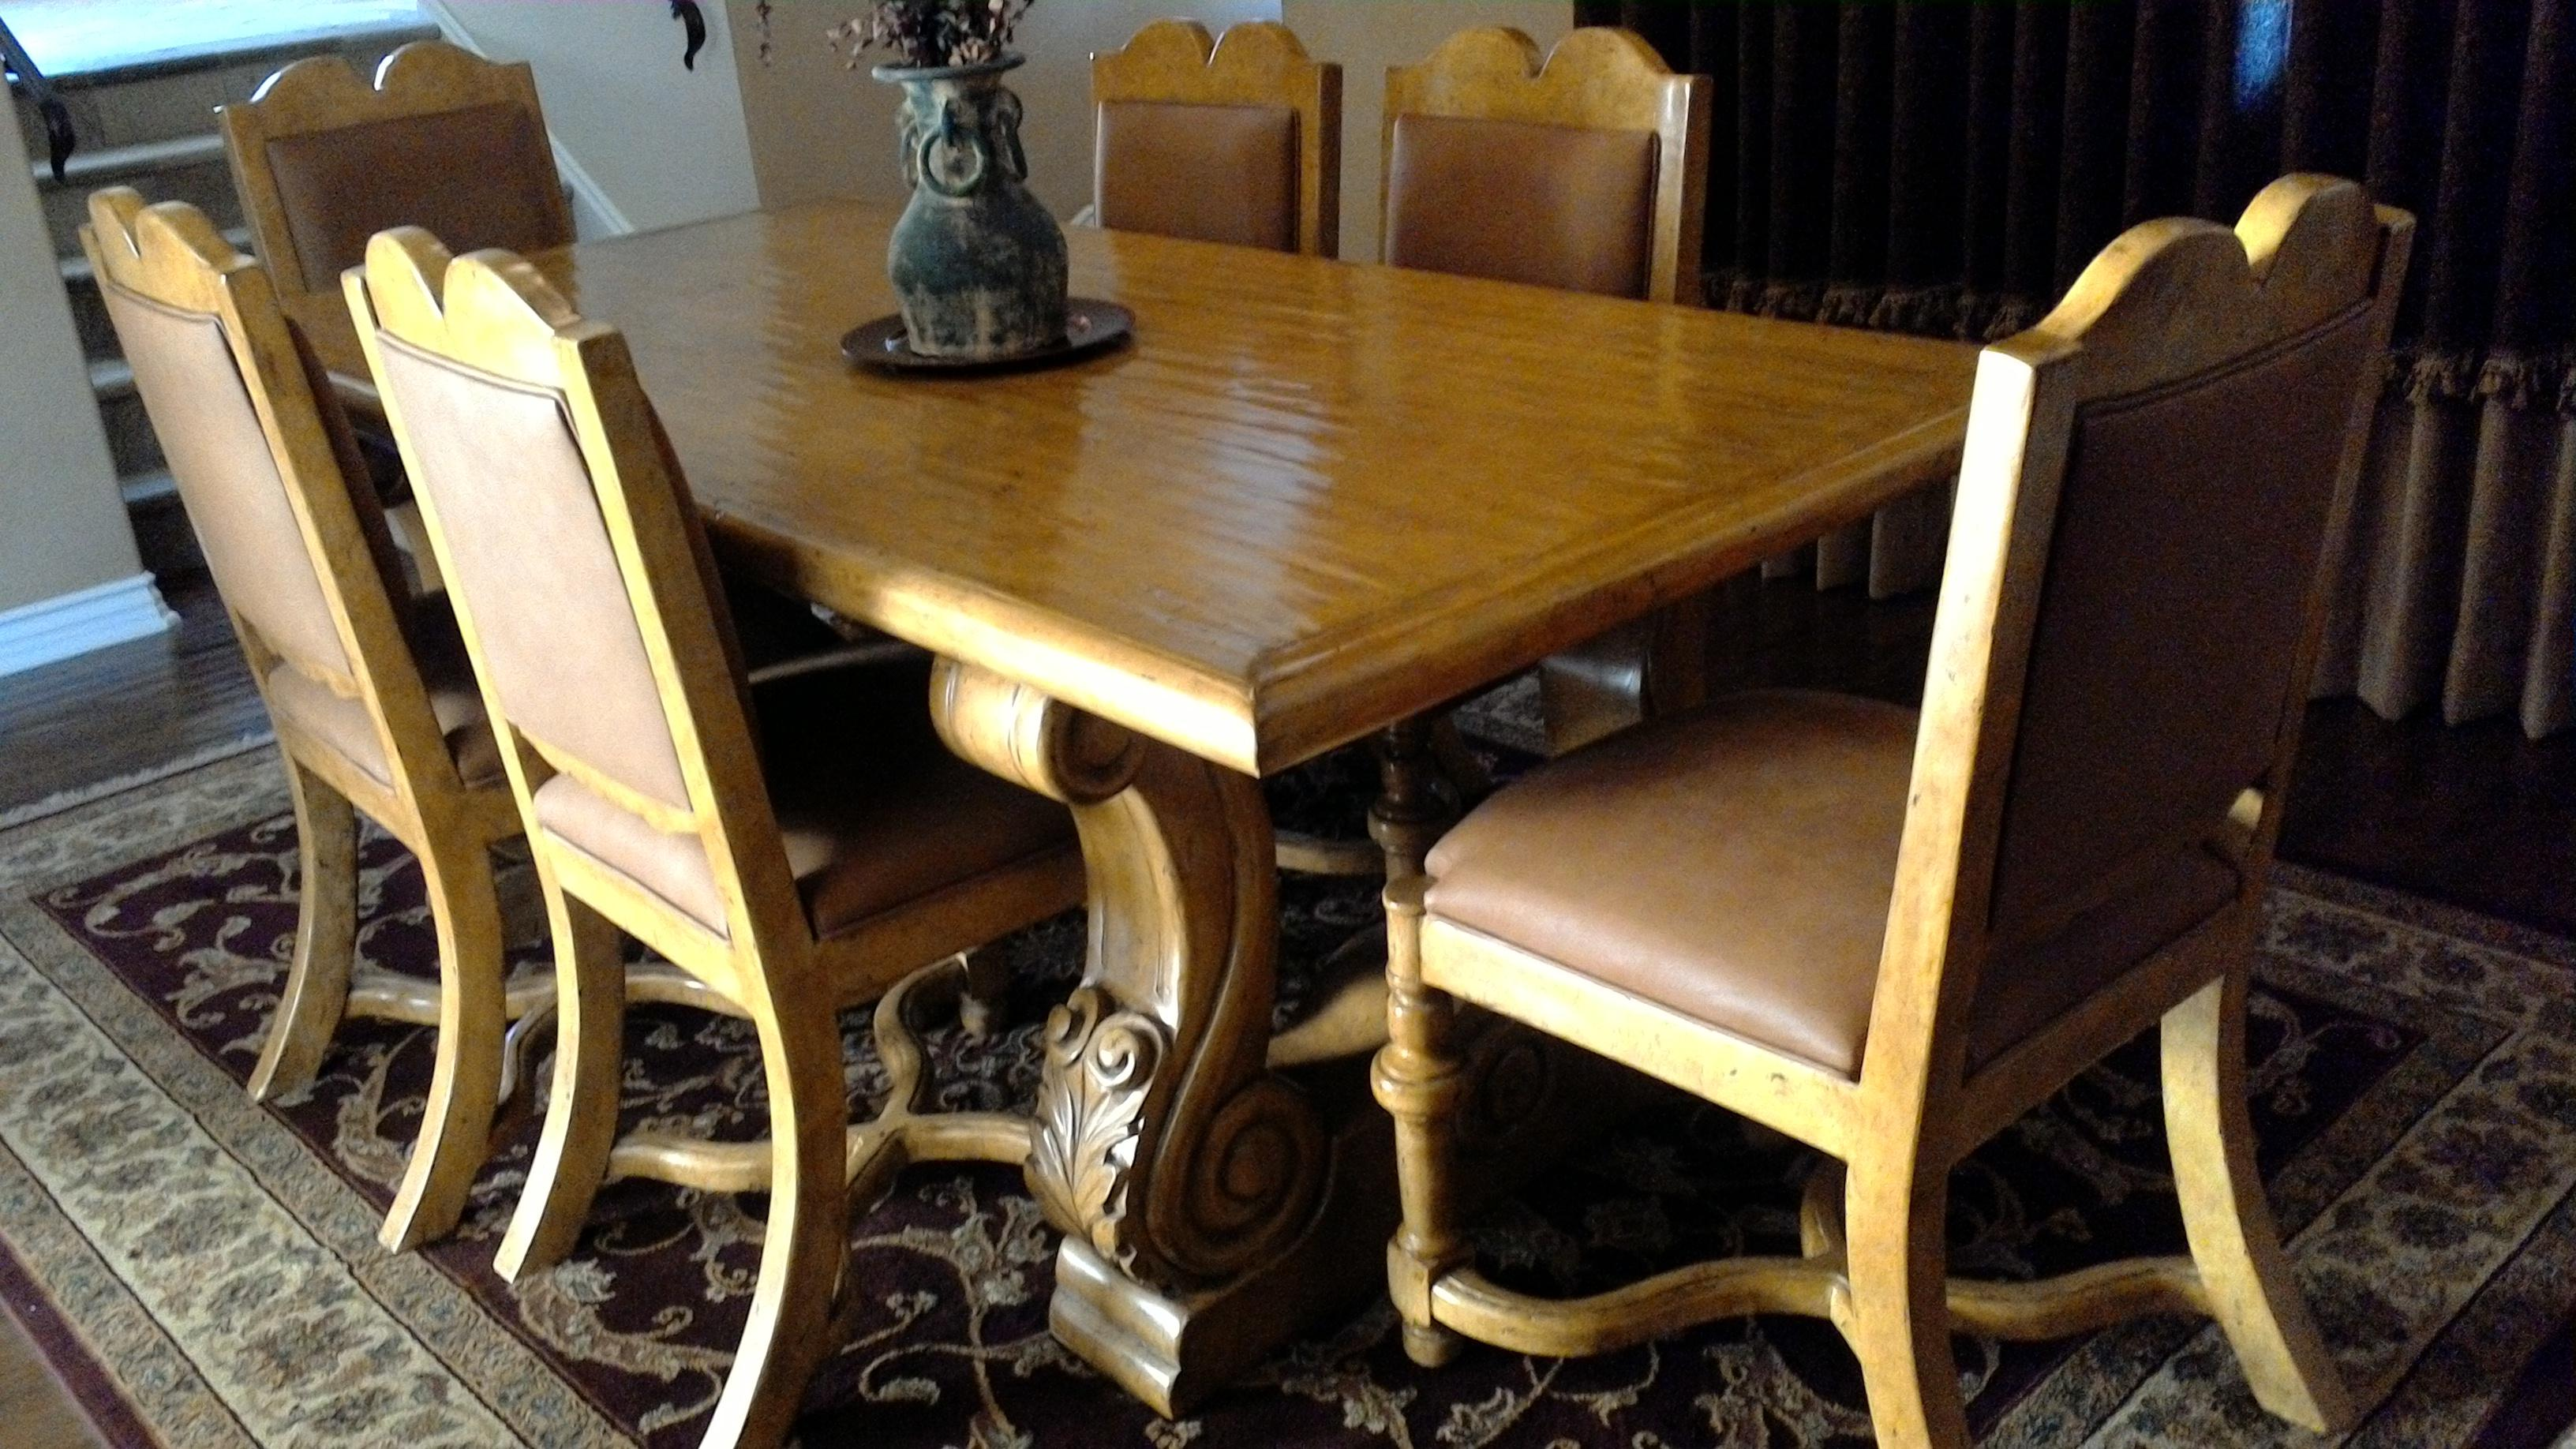 Merveilleux Arte De Mexico Furniture #8   Arte De Mexico Custom Dining Room Set   Image  9 Of 11